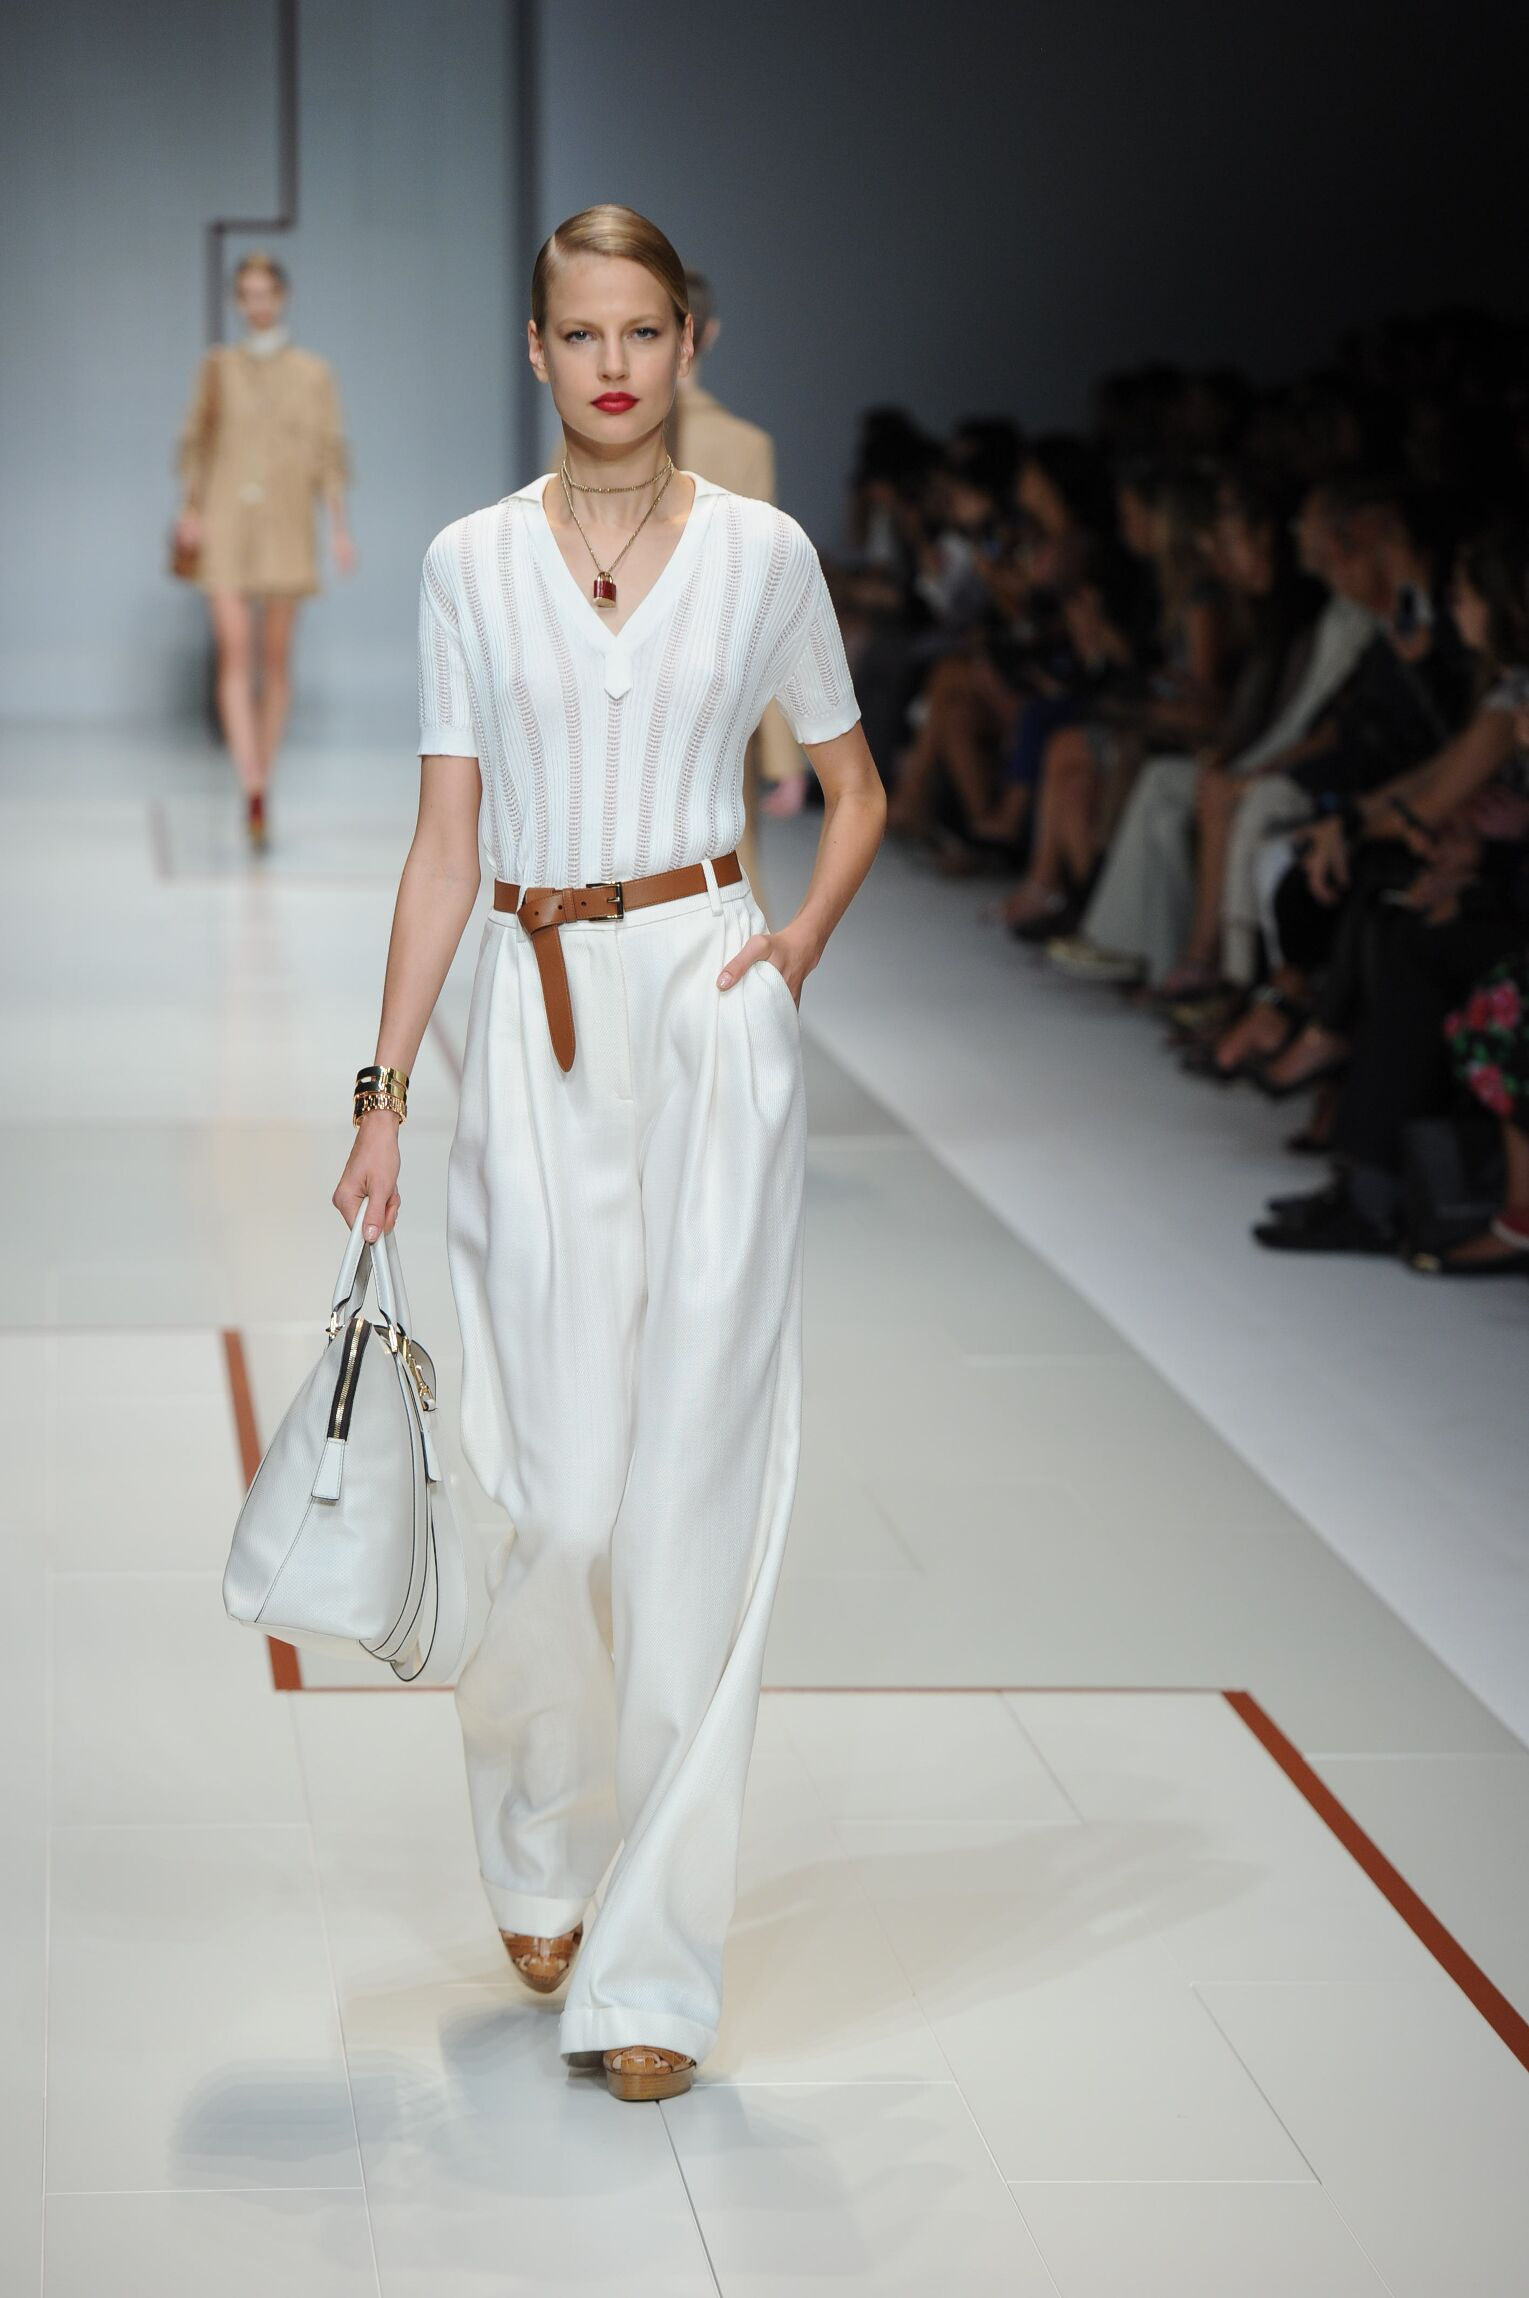 Summer 2015 Fashion Show Trussardi